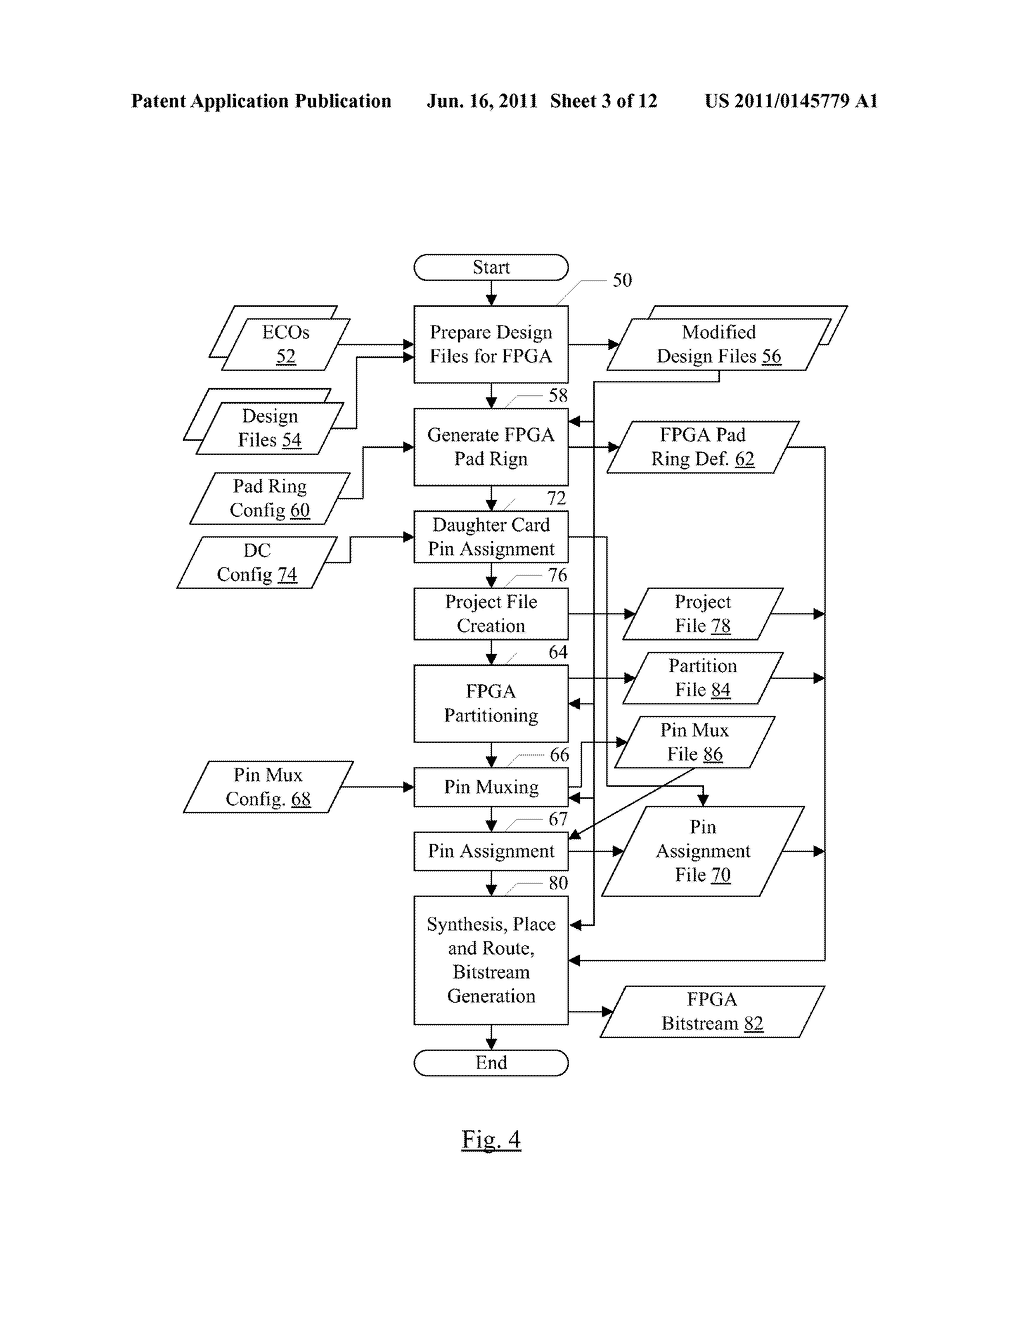 Engineering Change Order Language For Modifying Integrated Circuit Programmable Popular Design Files Logic Device Implementation Diagram Schematic